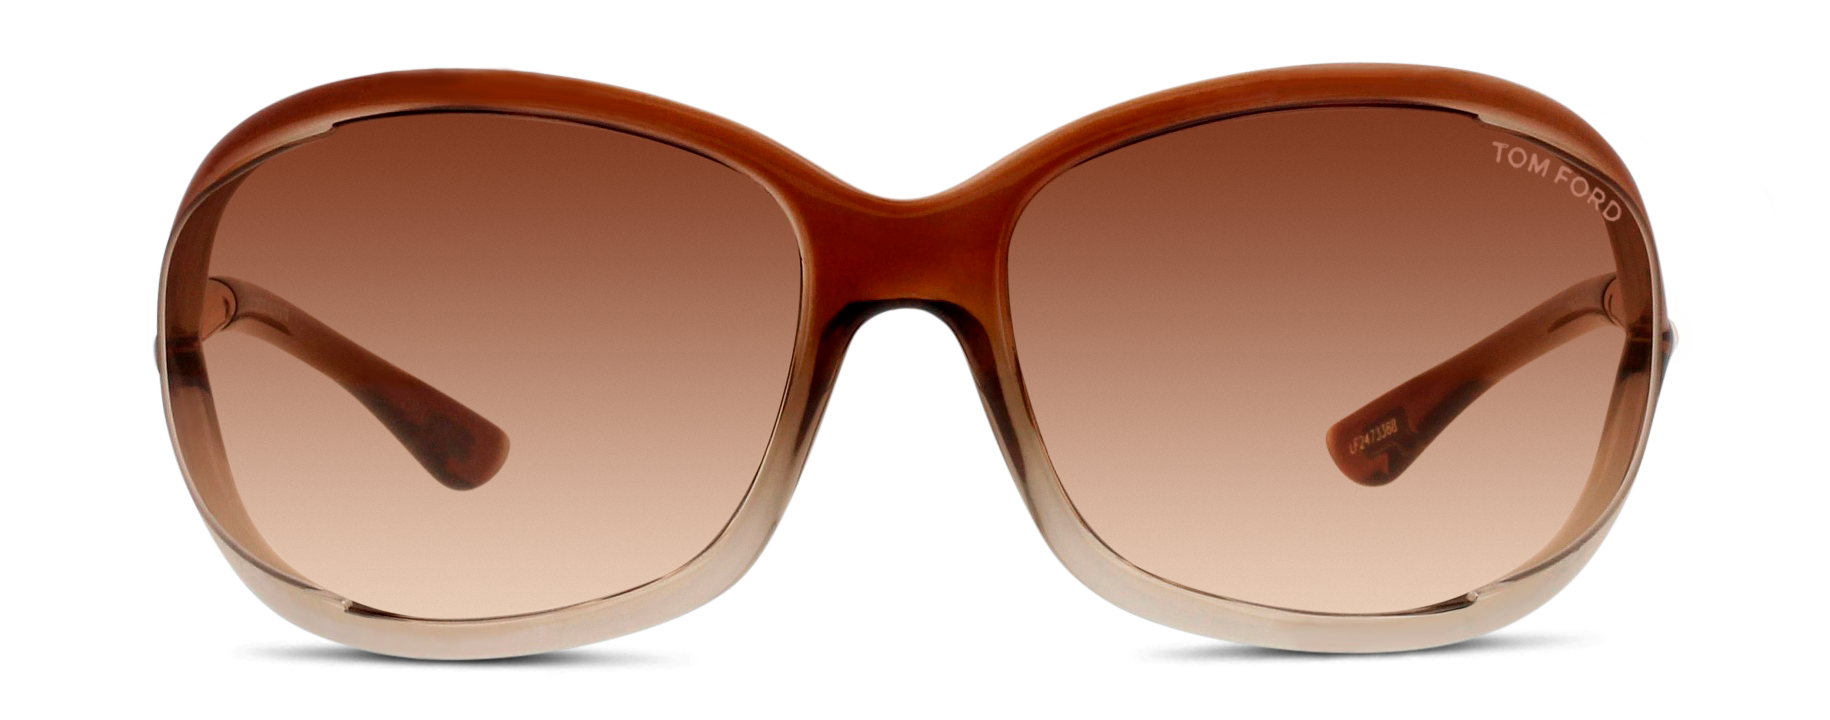 Front Tom Ford Tom Ford 0008 38F 61/99 Bruin, Transparant/Bruin